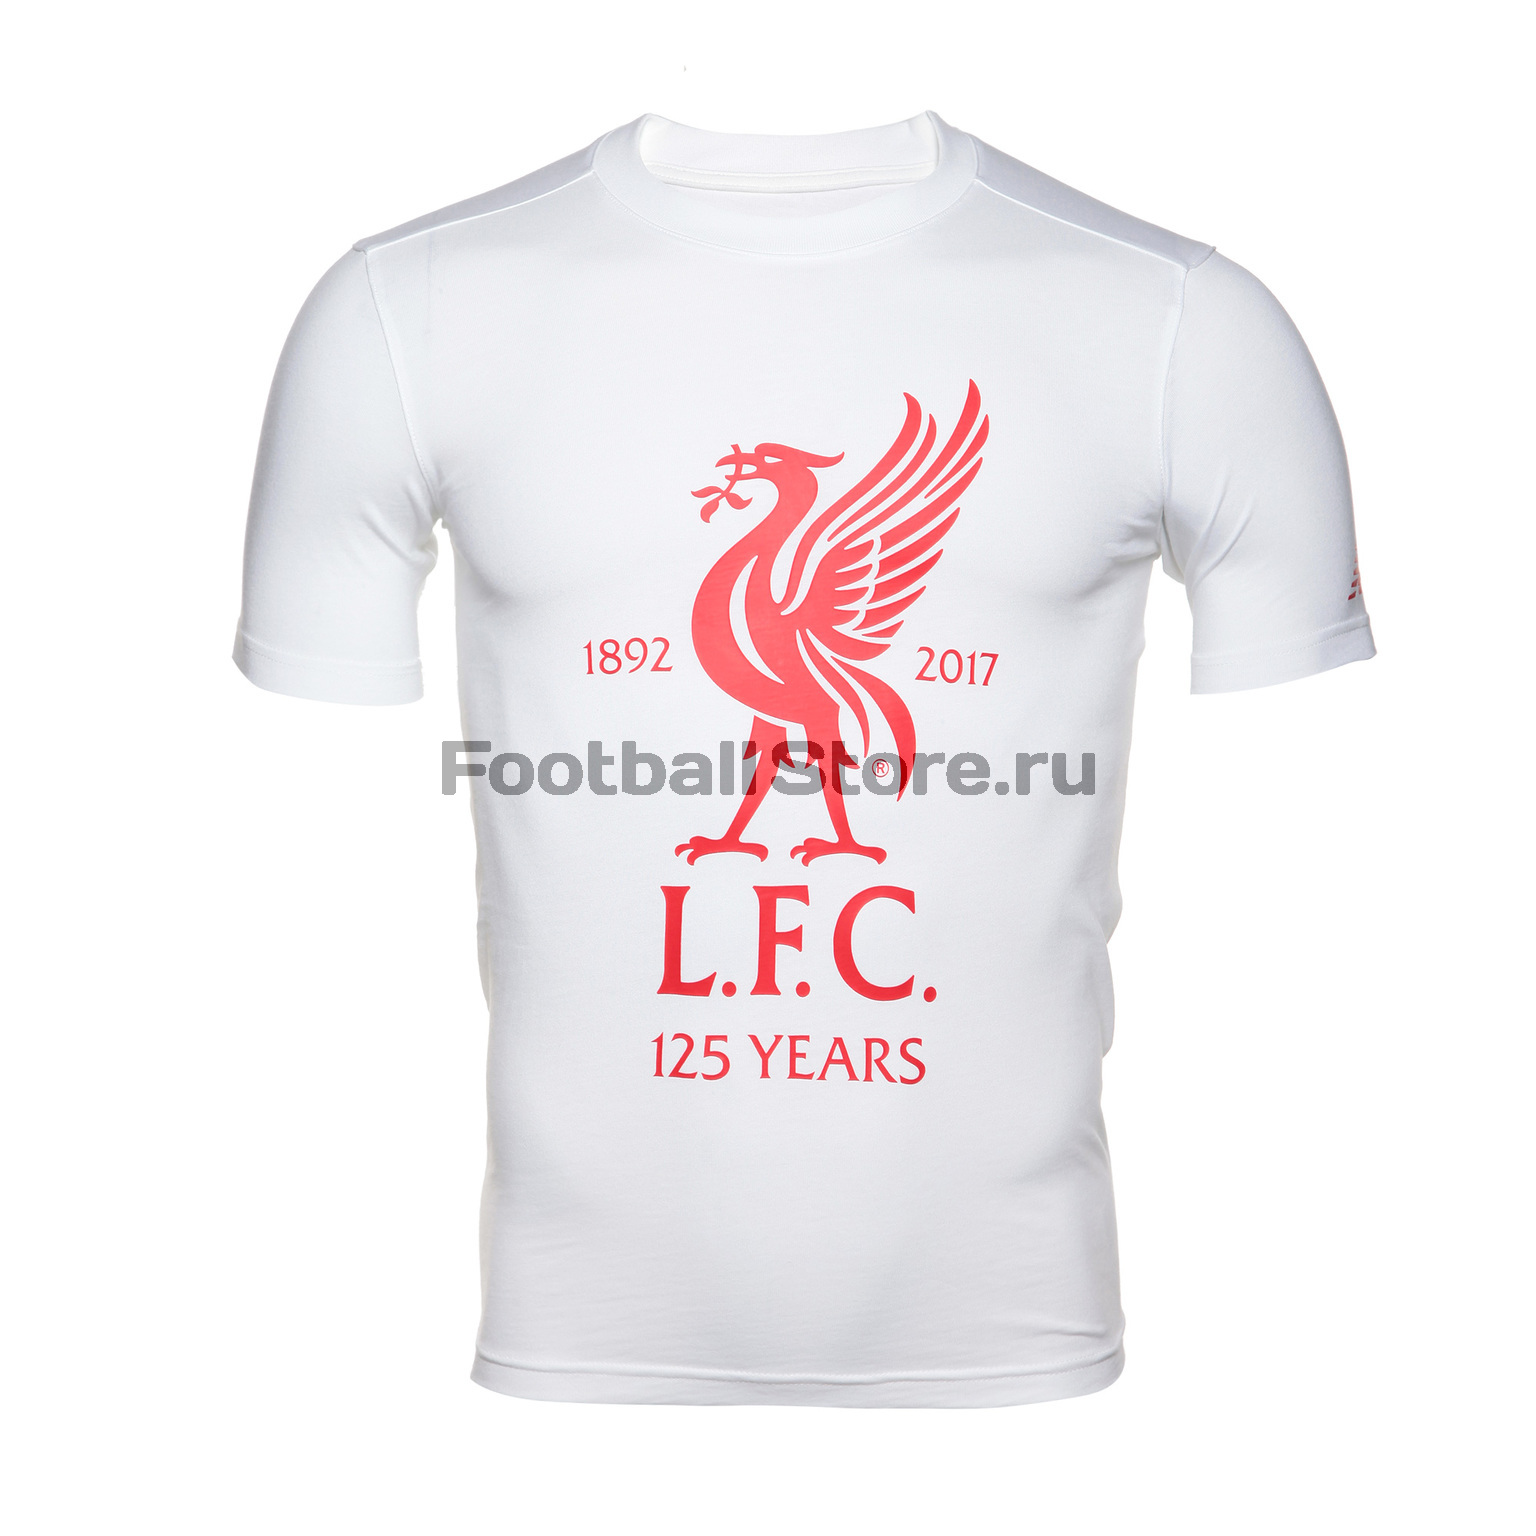 Футболка New Balance Liverpool Graphic AMT71595/WT футболка детская new balance nk9e52105u